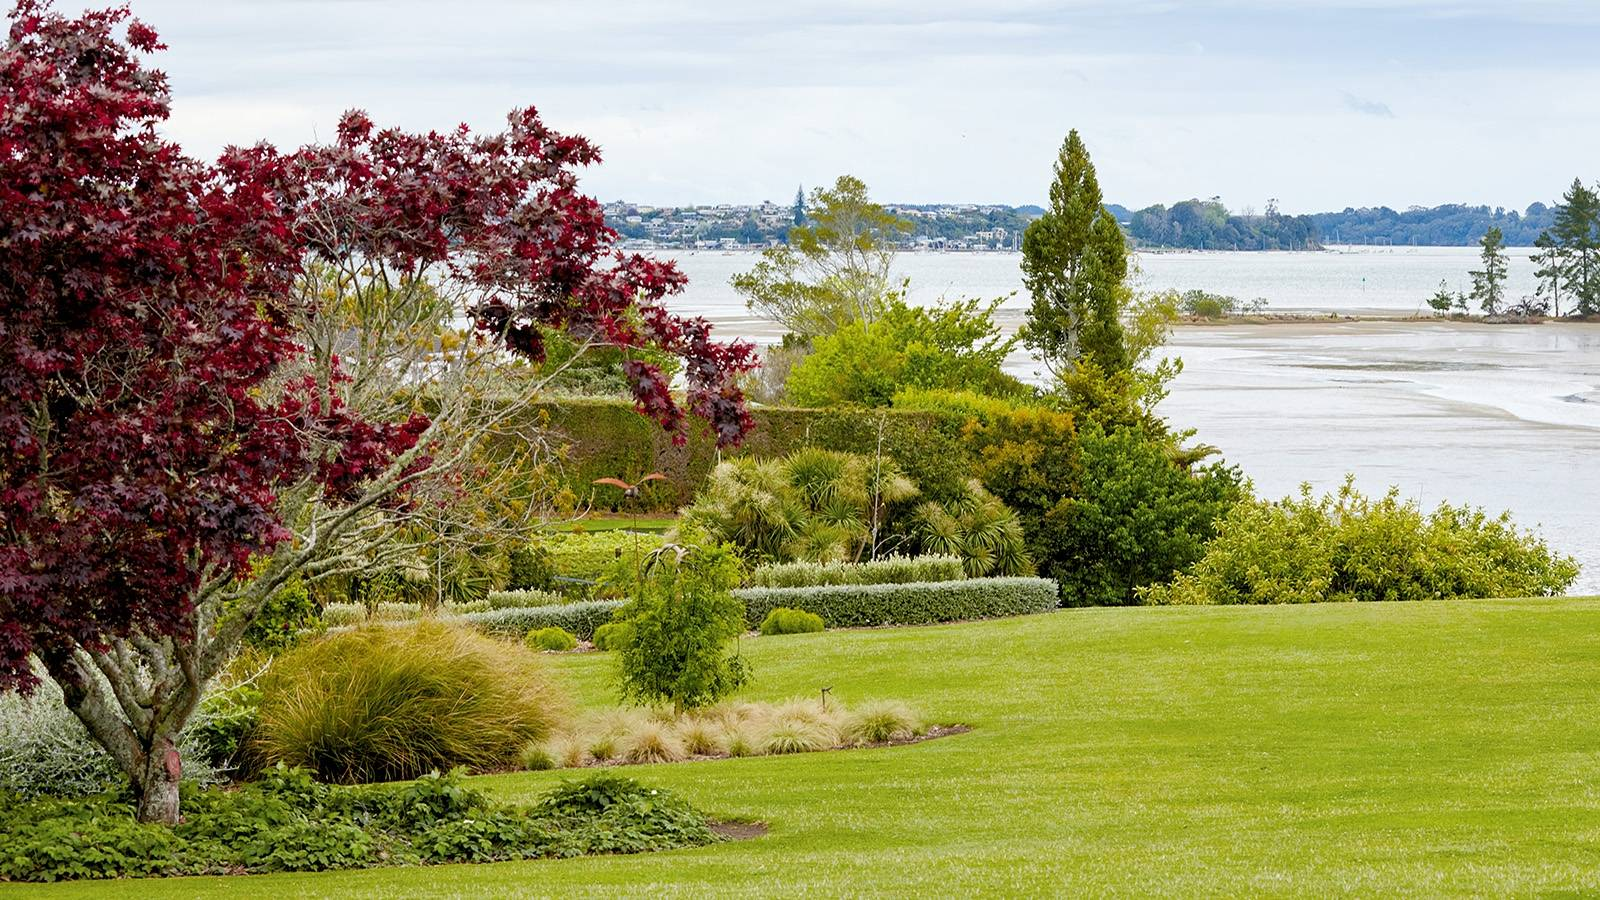 Coveted seaside Tauranga garden finally came this couple's way